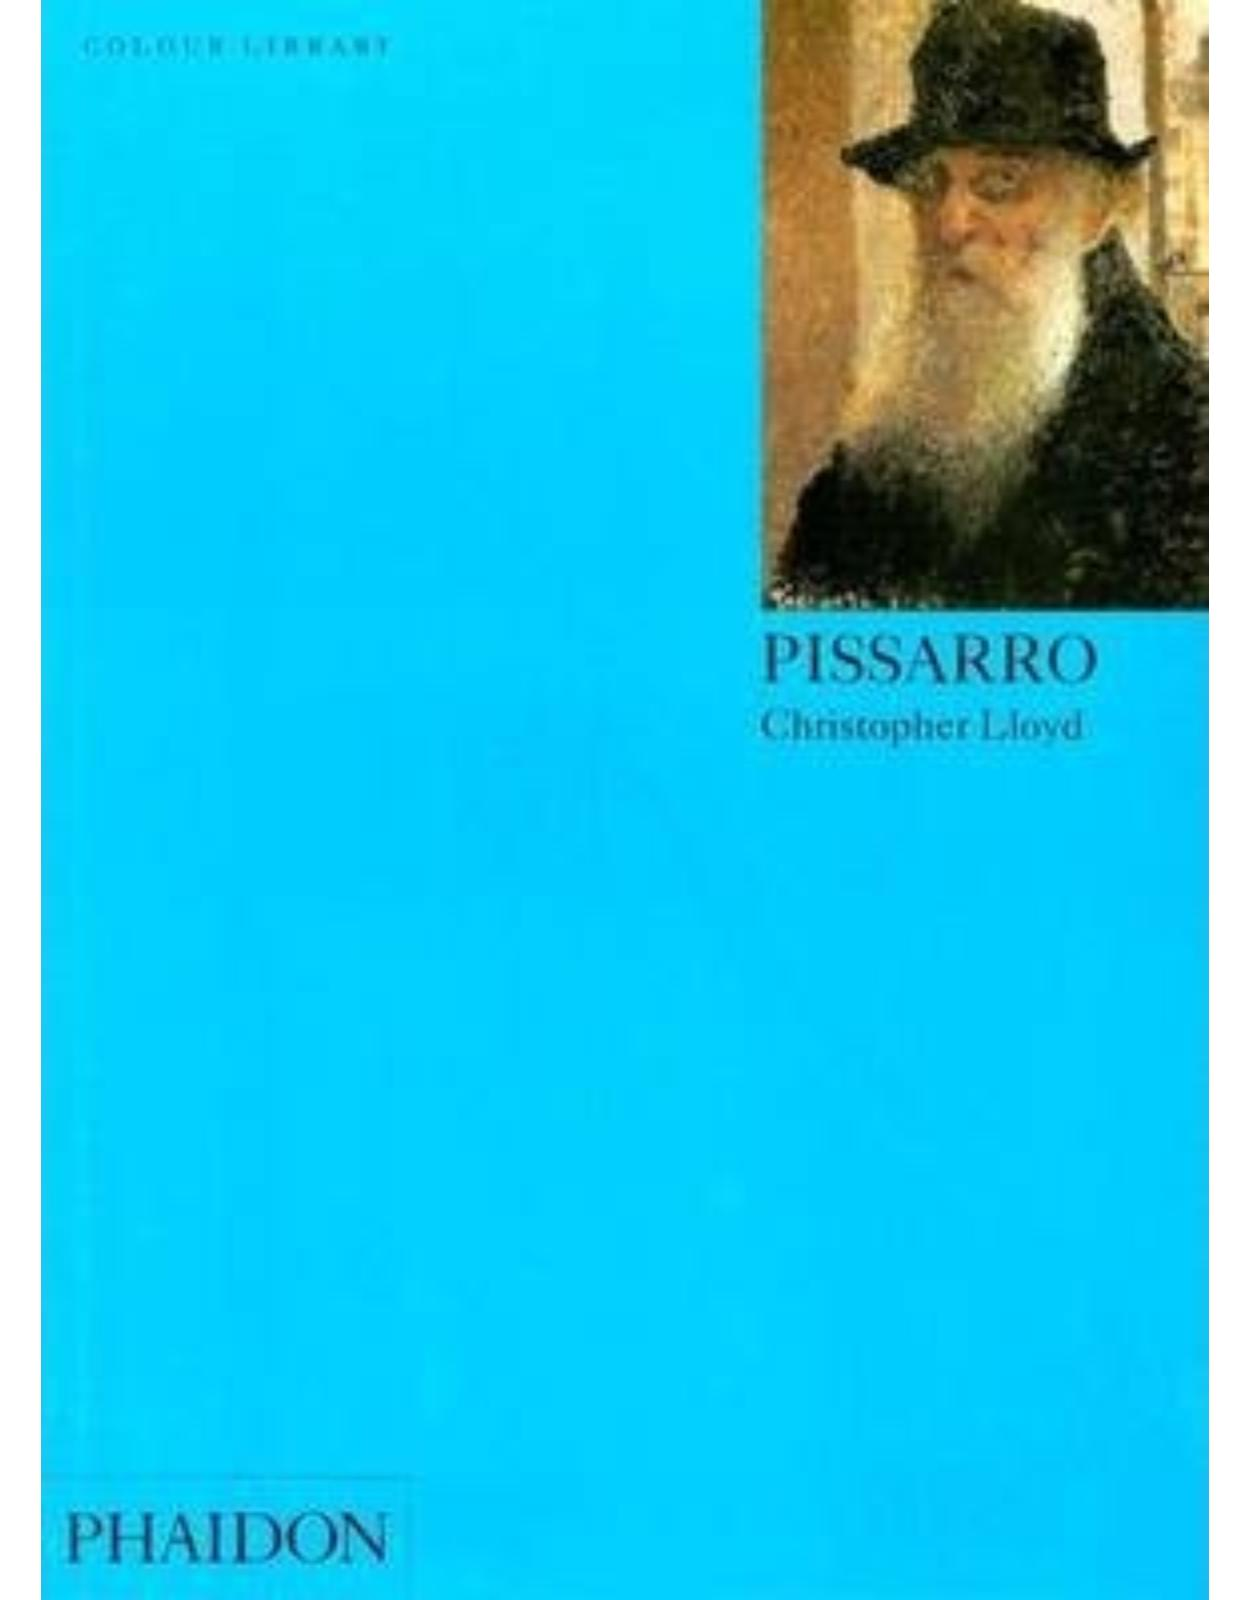 Pissarro (Phaidon Colour Library)